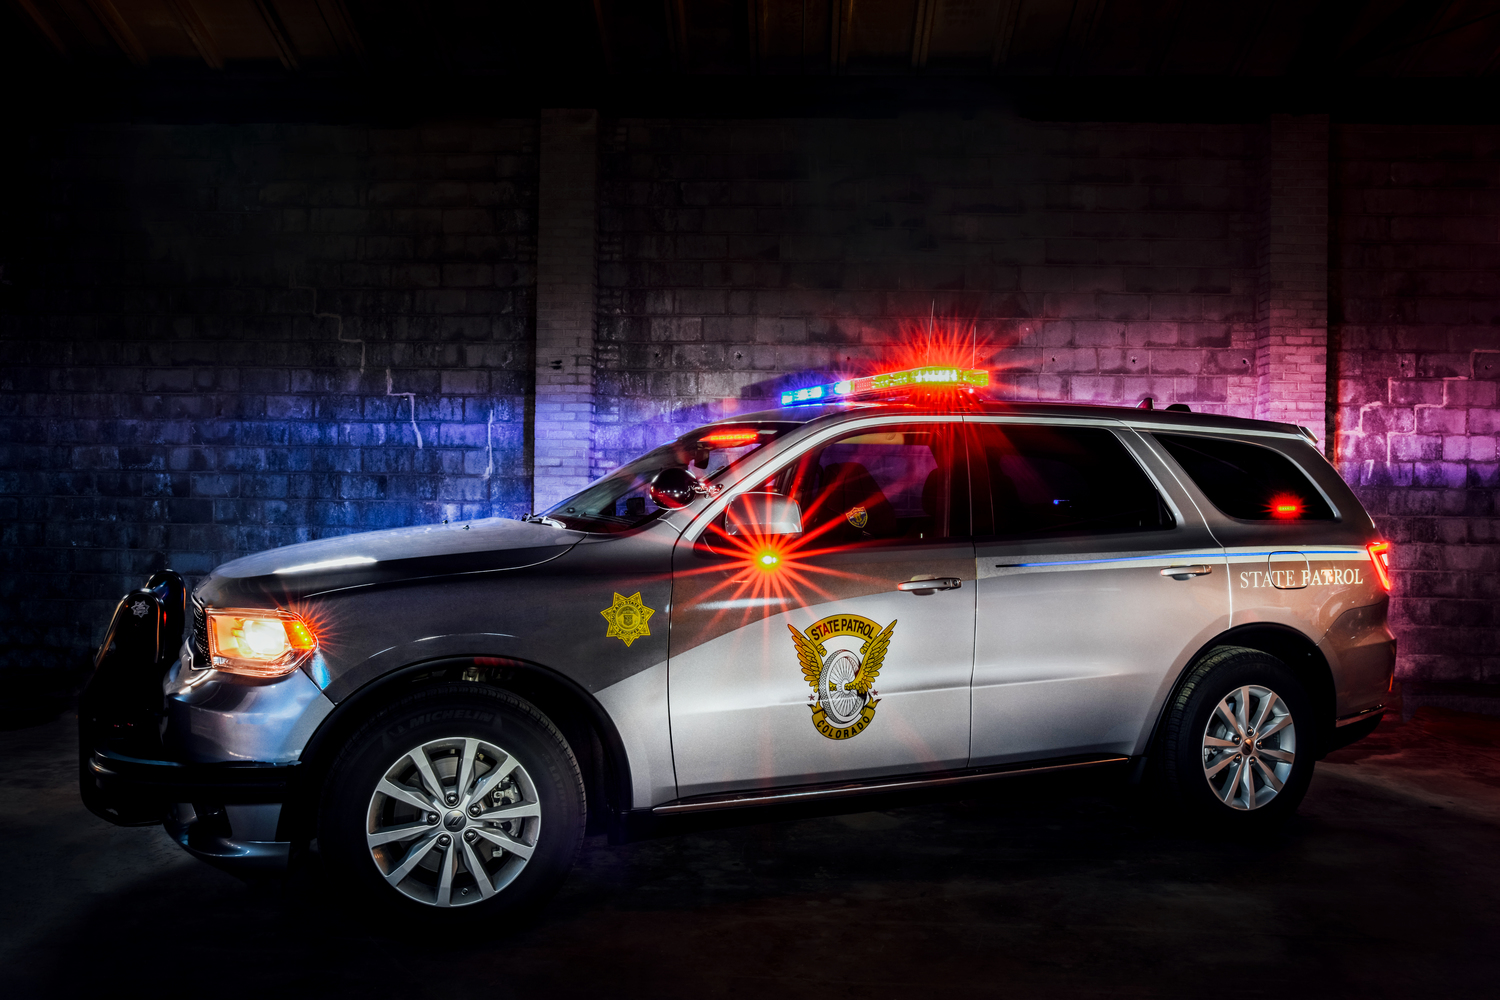 <strong>Colorado State Patrol</strong><br><br>